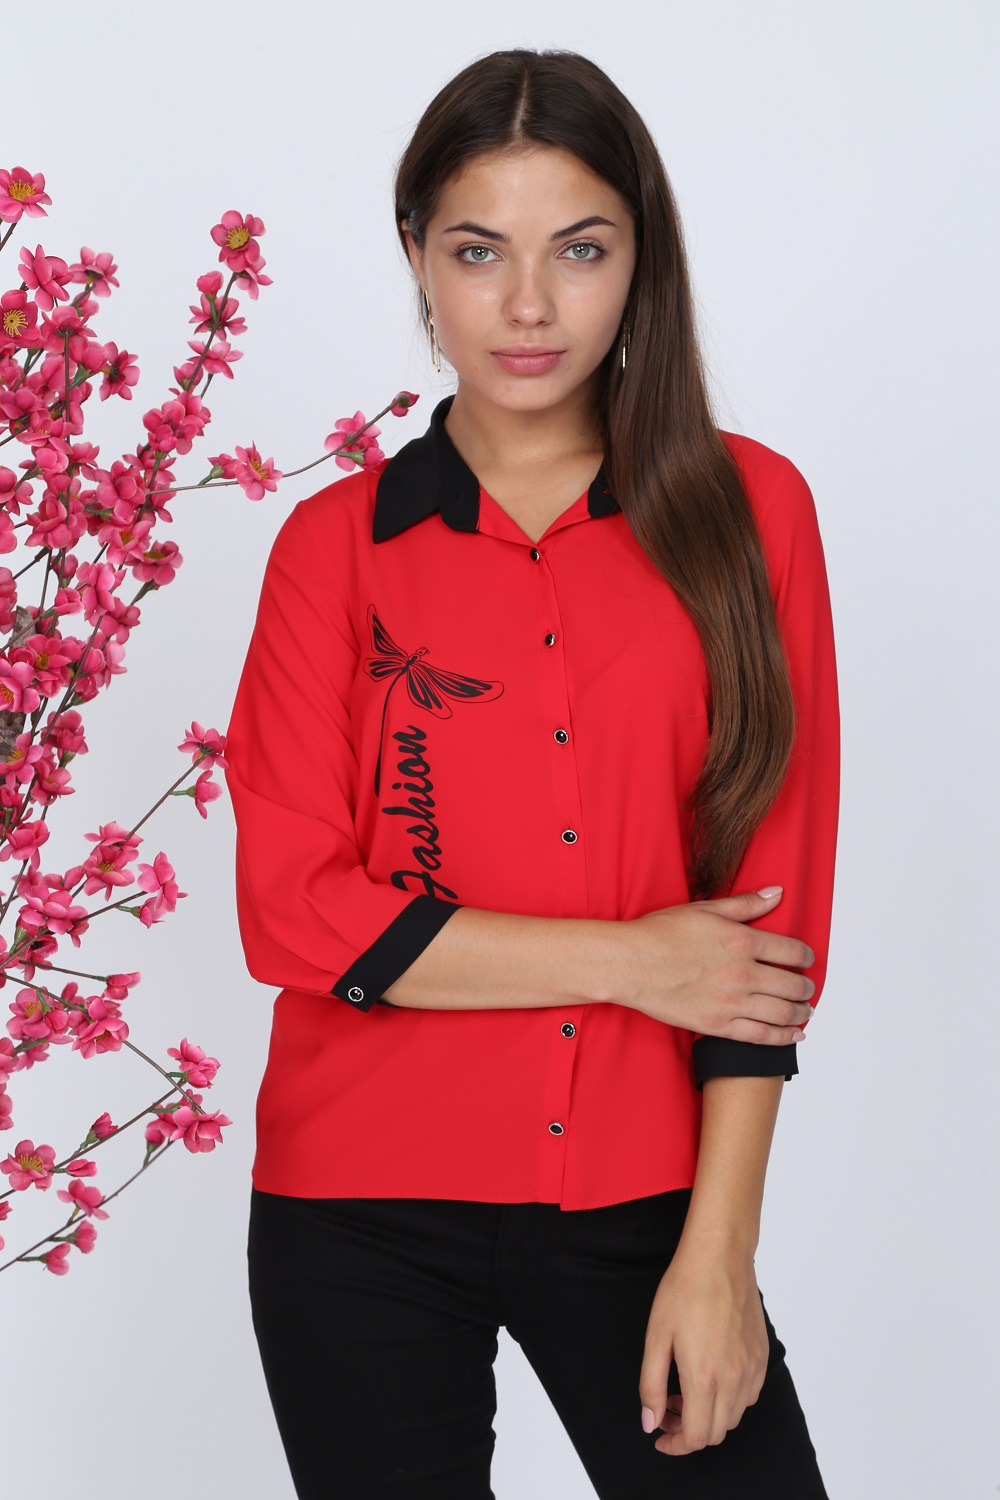 Butterfly Patterned Red Blouse